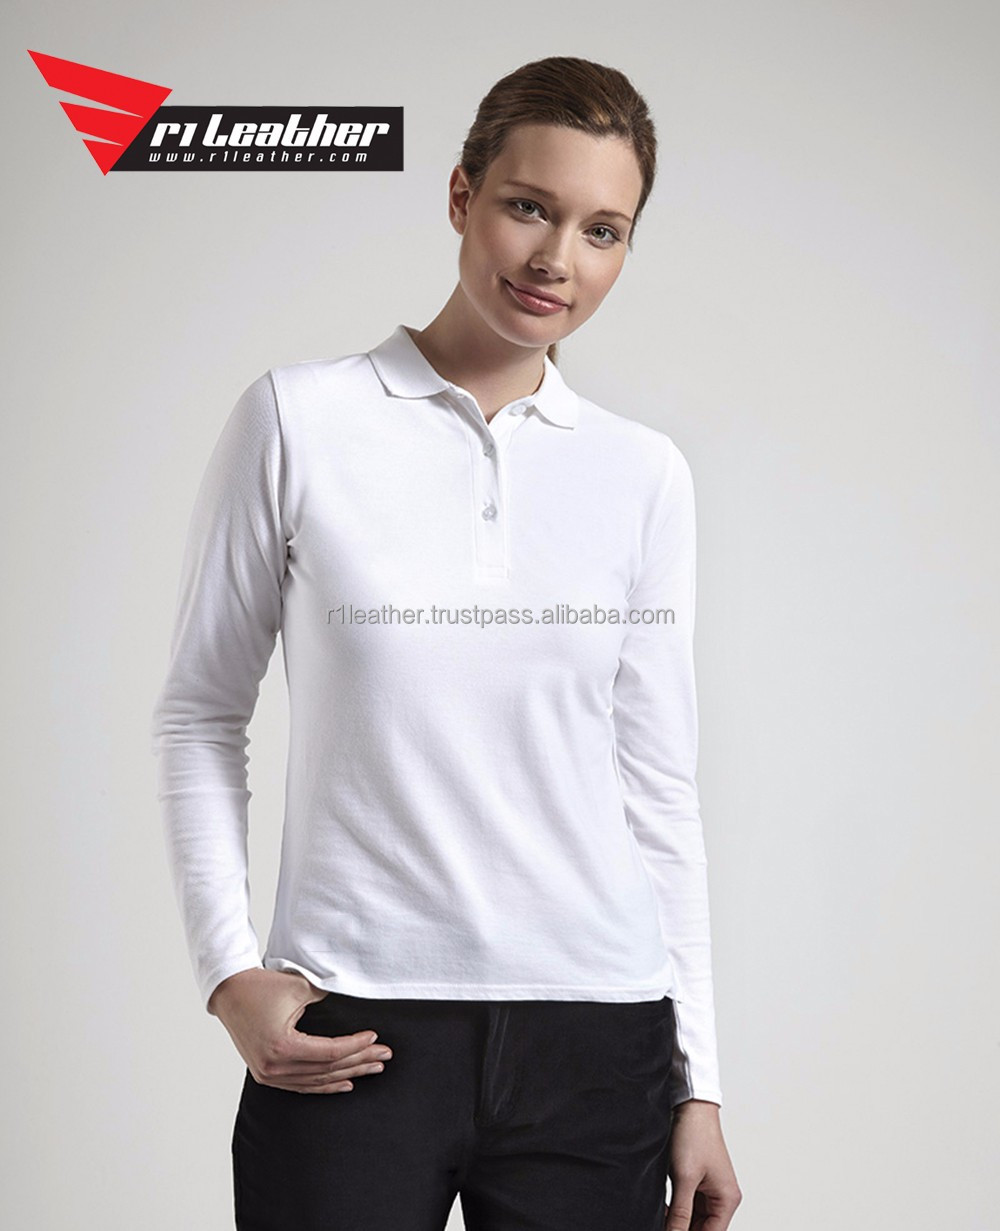 Bulk Polo Shirts Wholesale China New Design Women Blank Polo Shirts Customized Logo